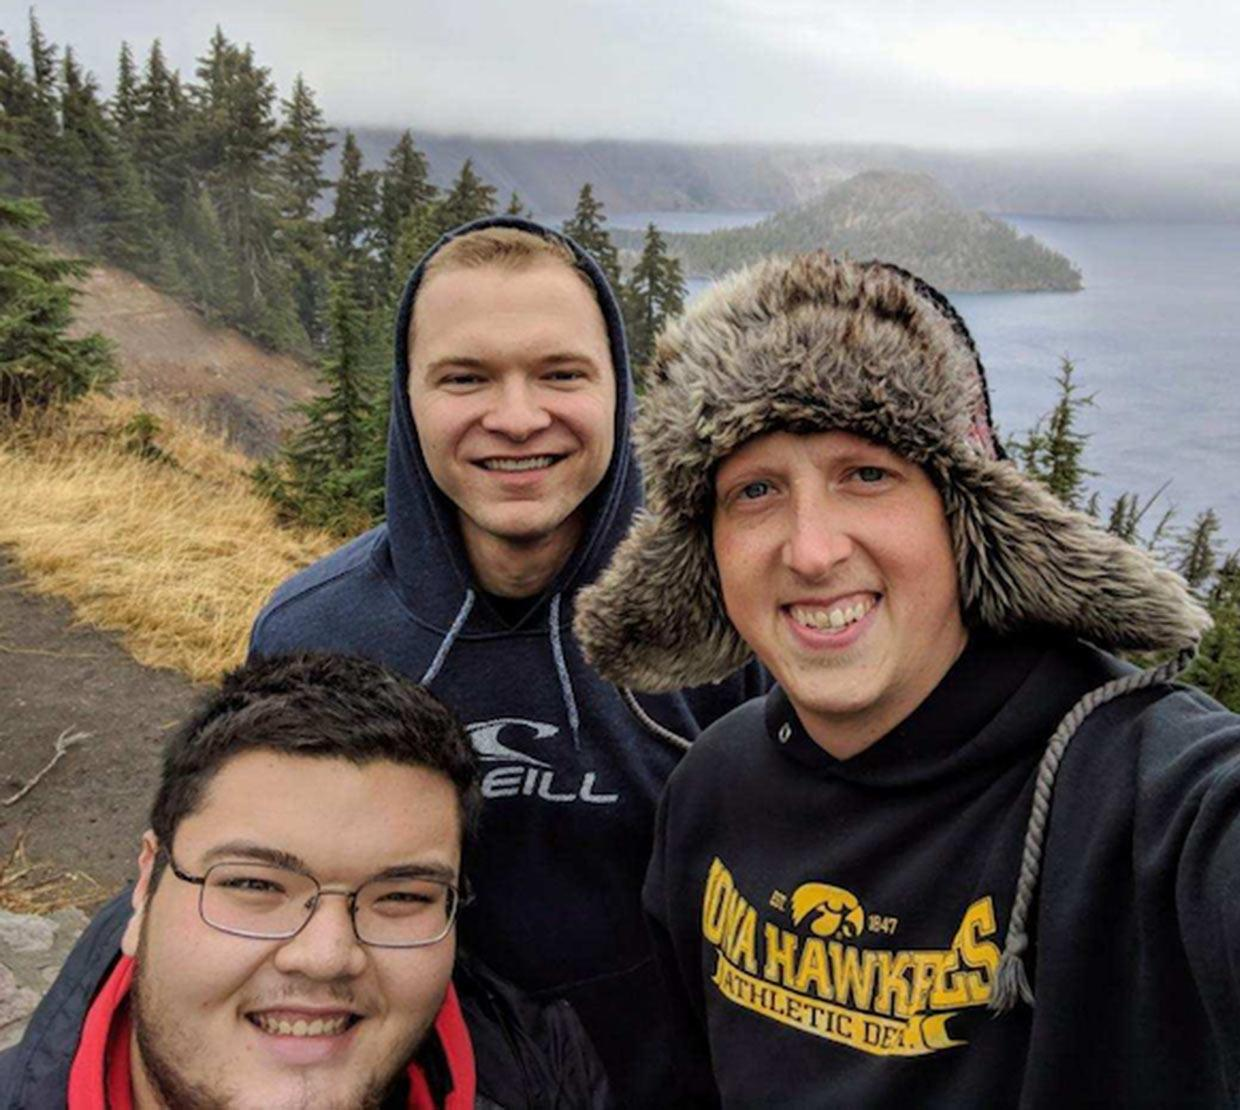 Cooper Lee Stateler with buddies above Crater Lake